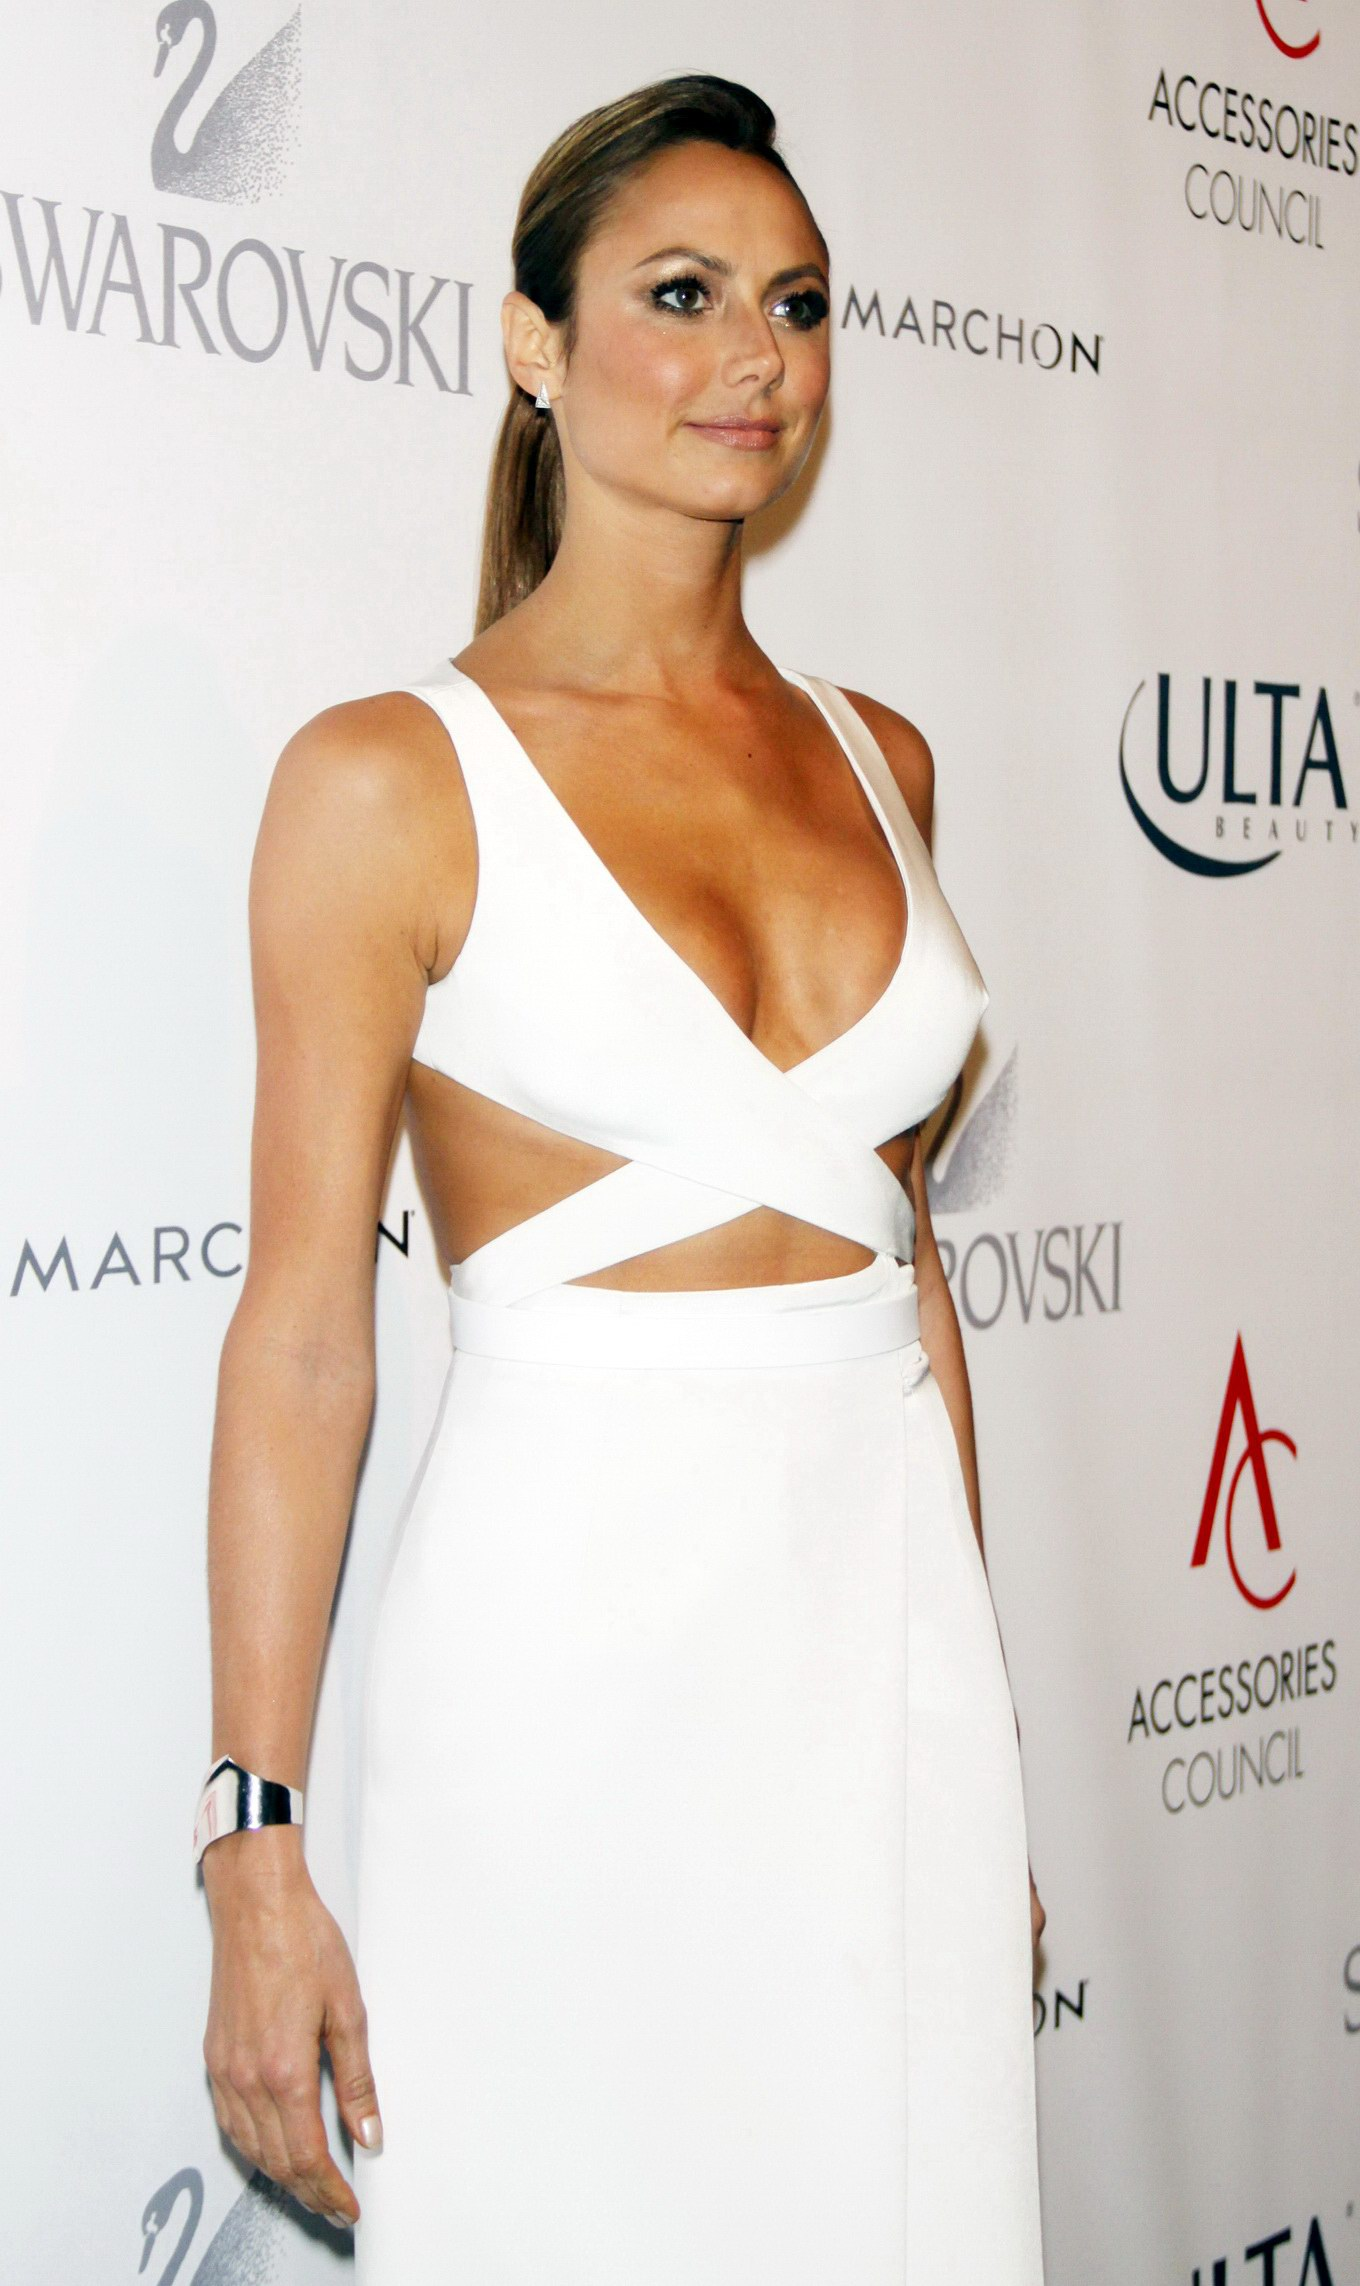 That this facial pics stacy keibler